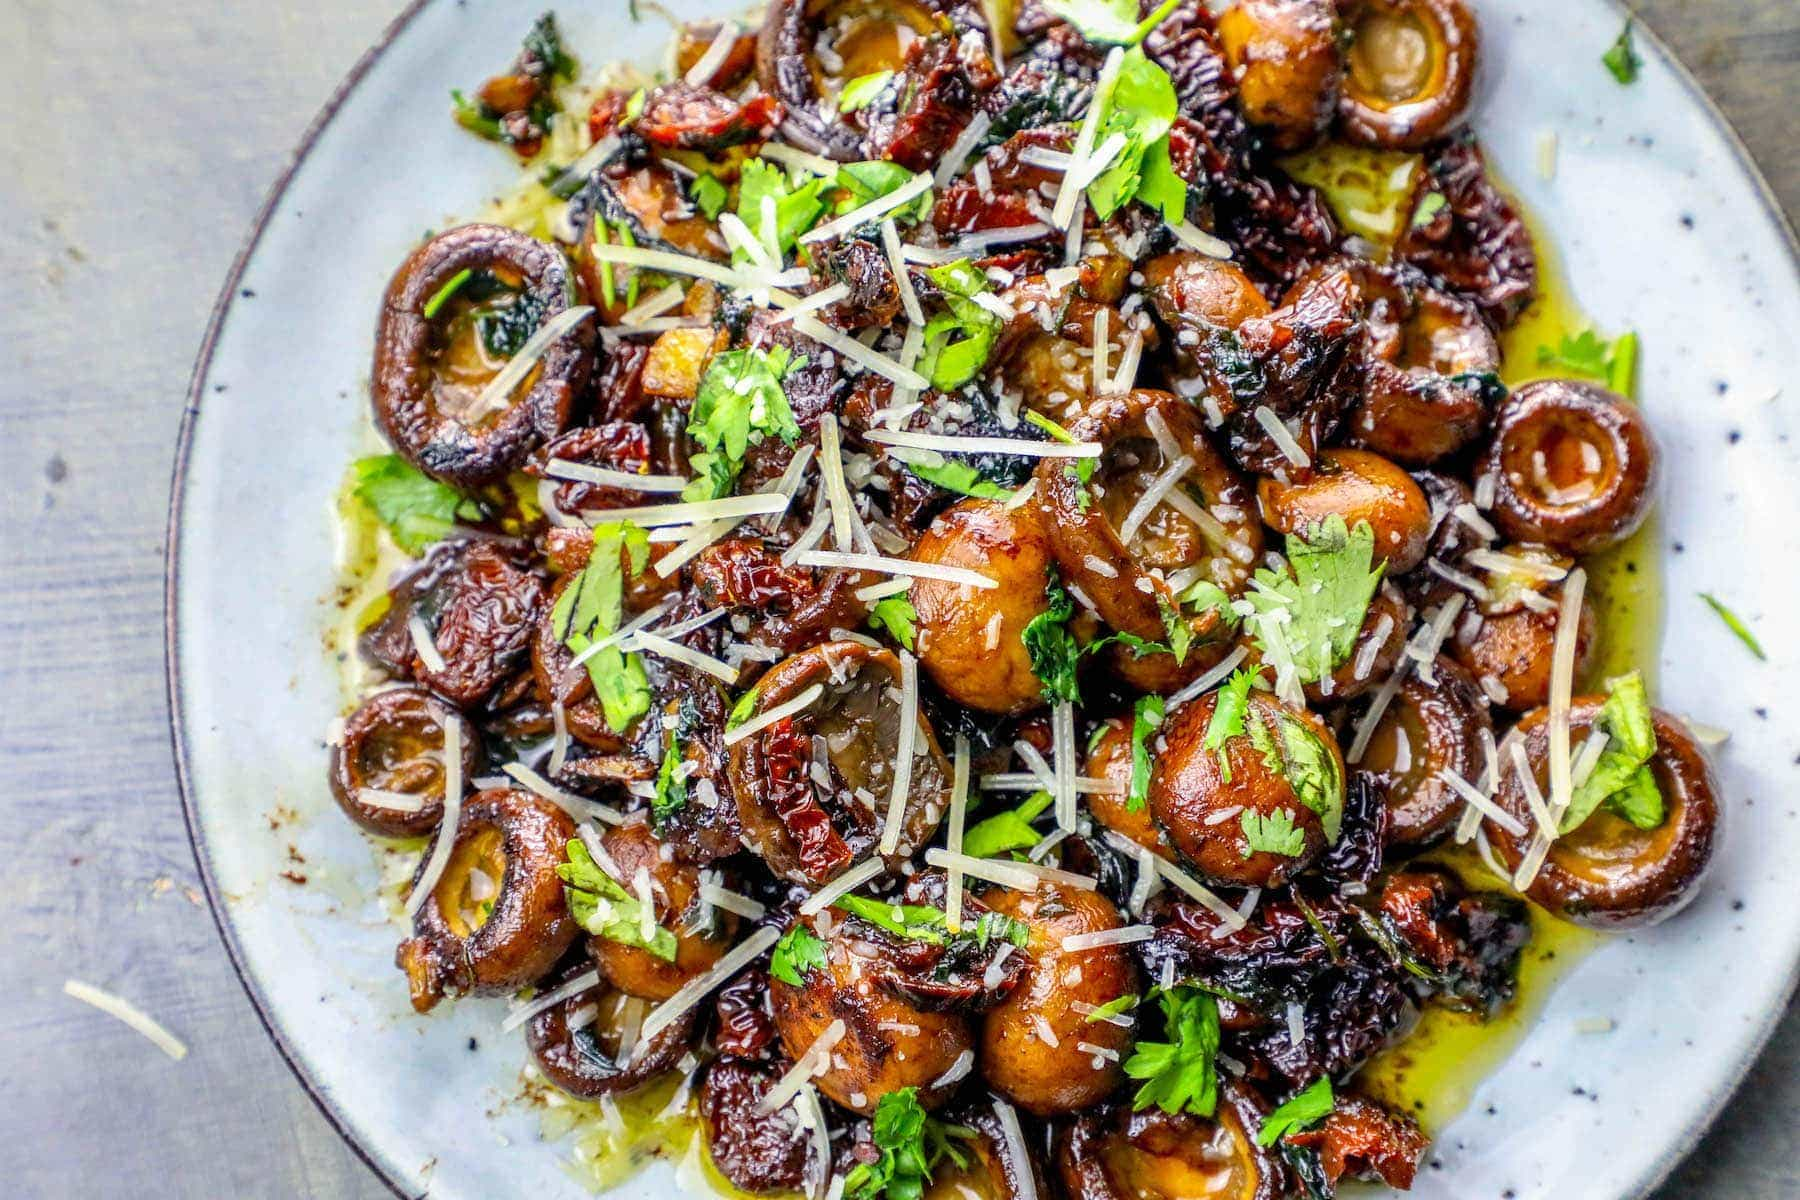 LOW CARB KETO GARLIC BUTTER PARMESAN TUSCAN MUSHROOMS4 - LOW CARB KETO GARLIC BUTTER PARMESAN TUSCAN MUSHROOMS